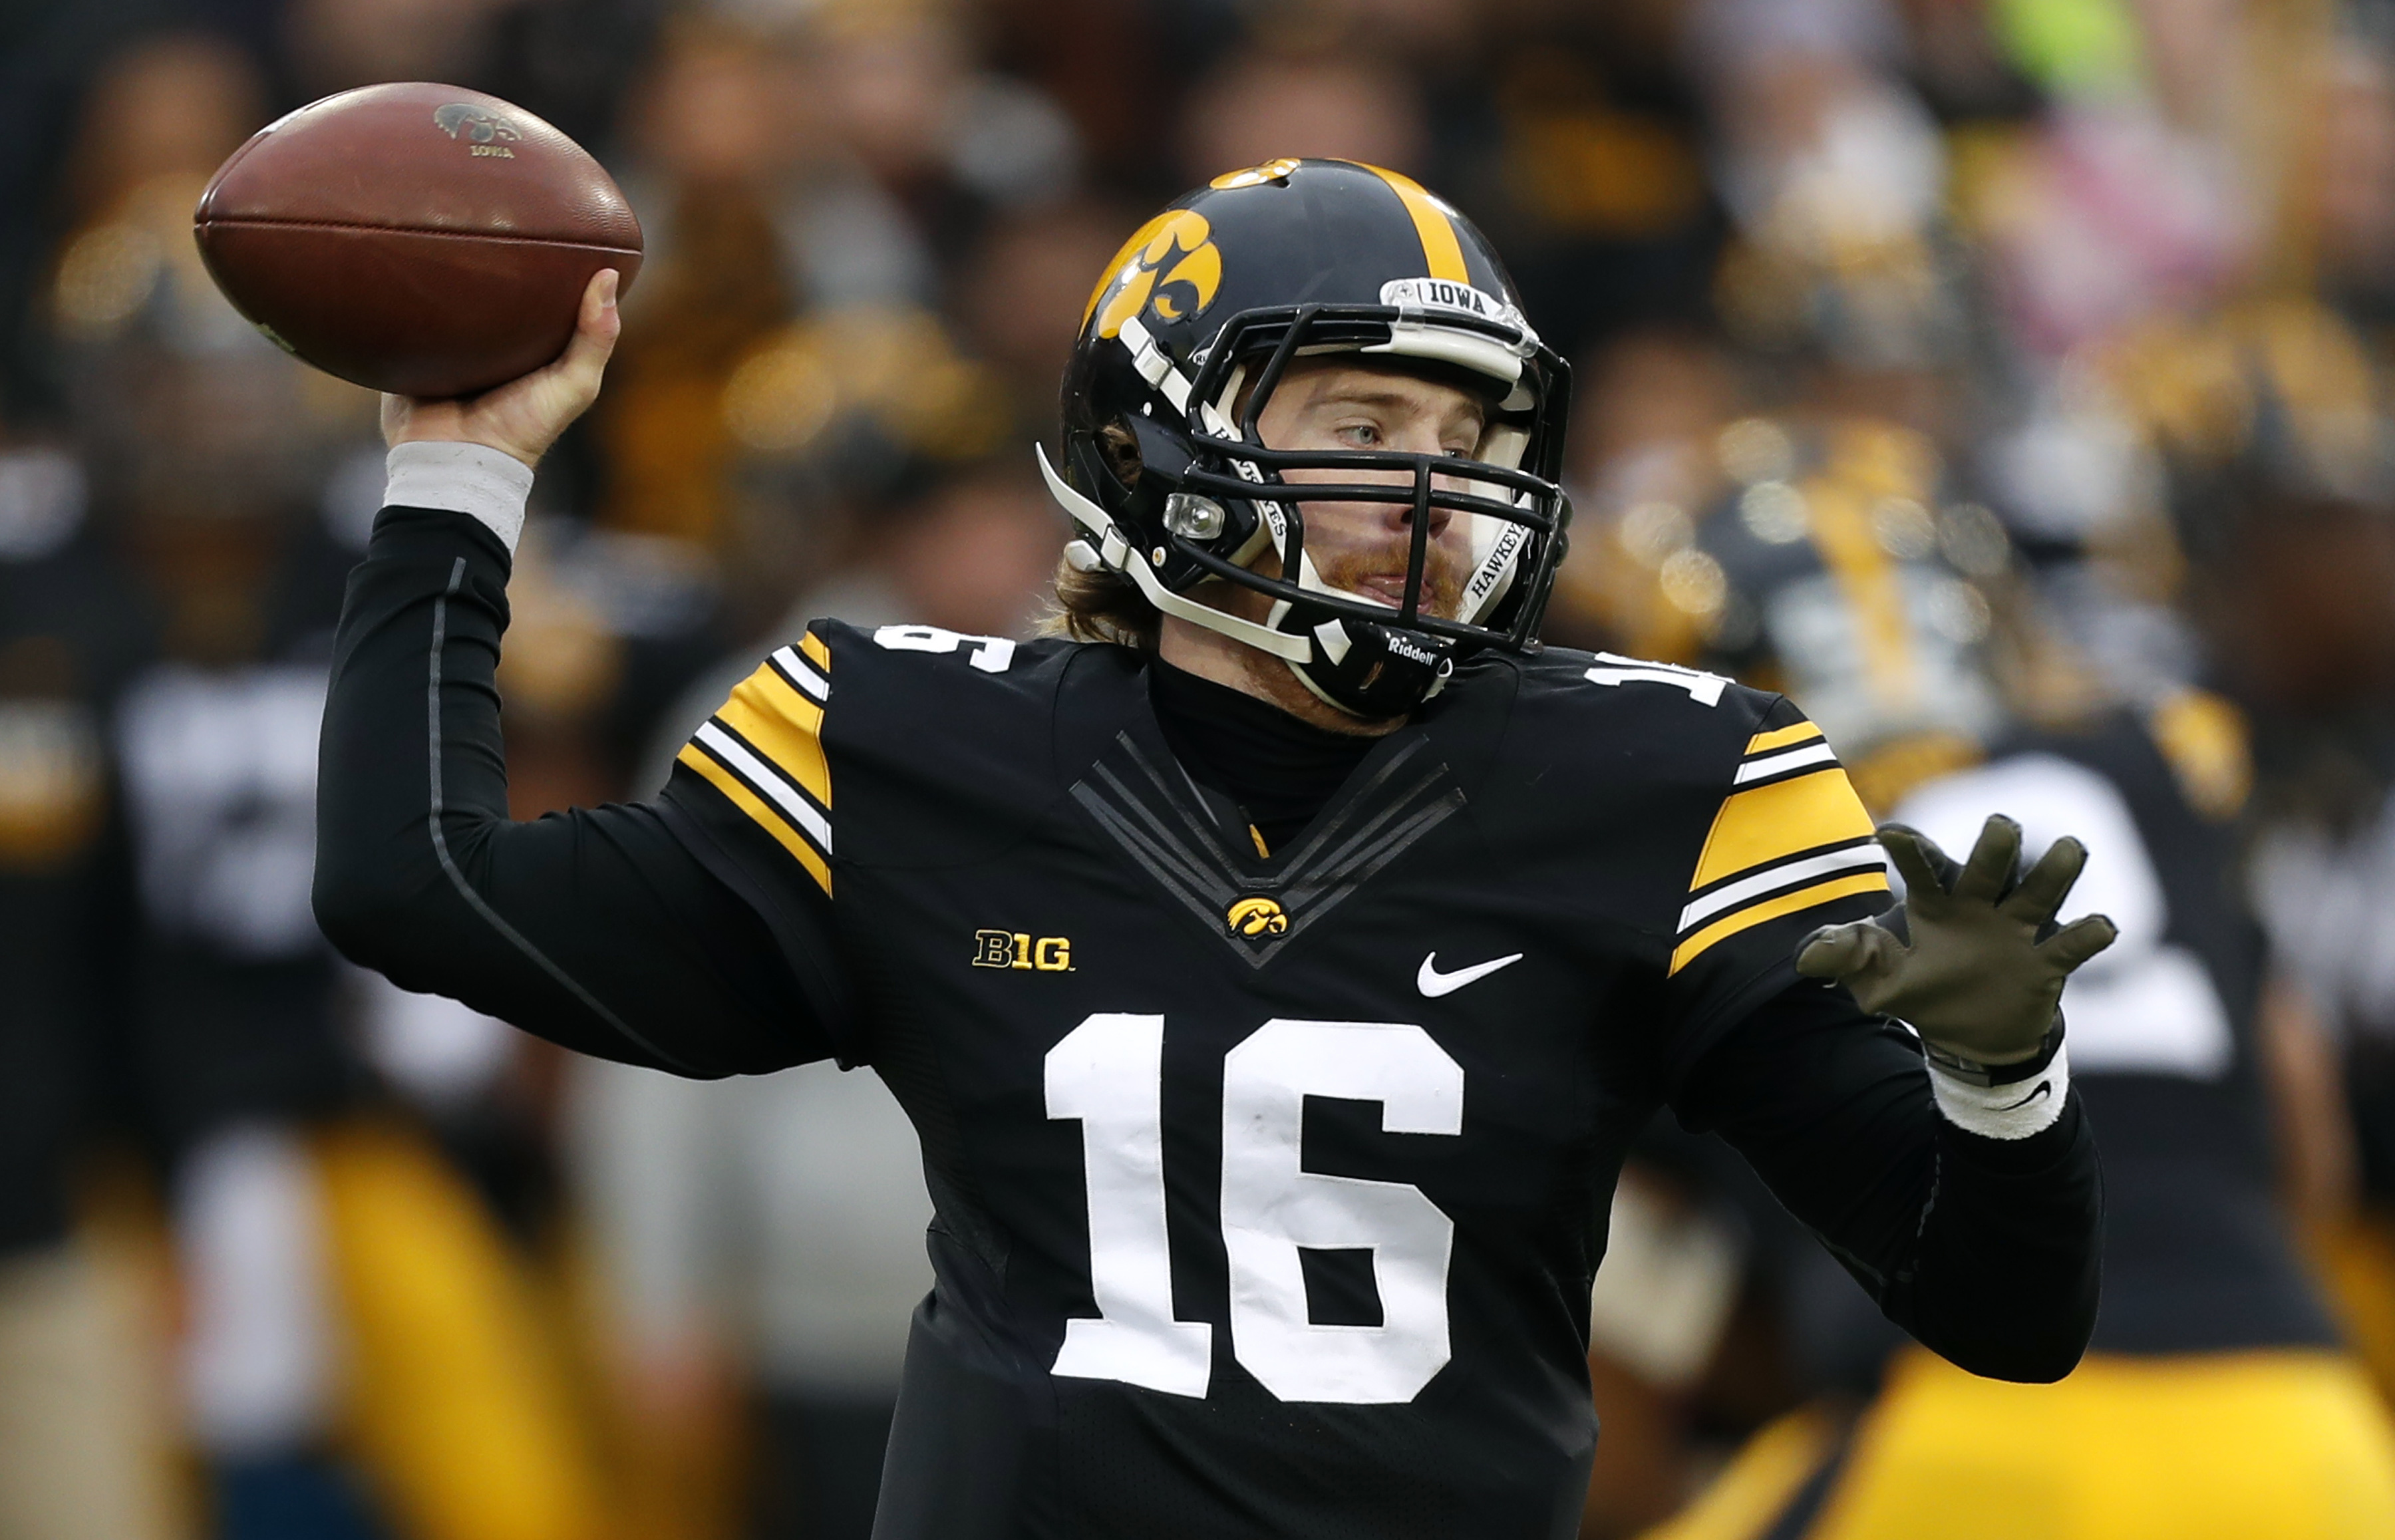 FILE - In this Friday, Nov. 25, 2016, file photo, Iowa quarterback C.J. Beathard throws a pass during the first half of an NCAA college football game against Nebraska in Iowa City, Iowa. Beathard enters his final game with Iowa for the Outback Bowl agains